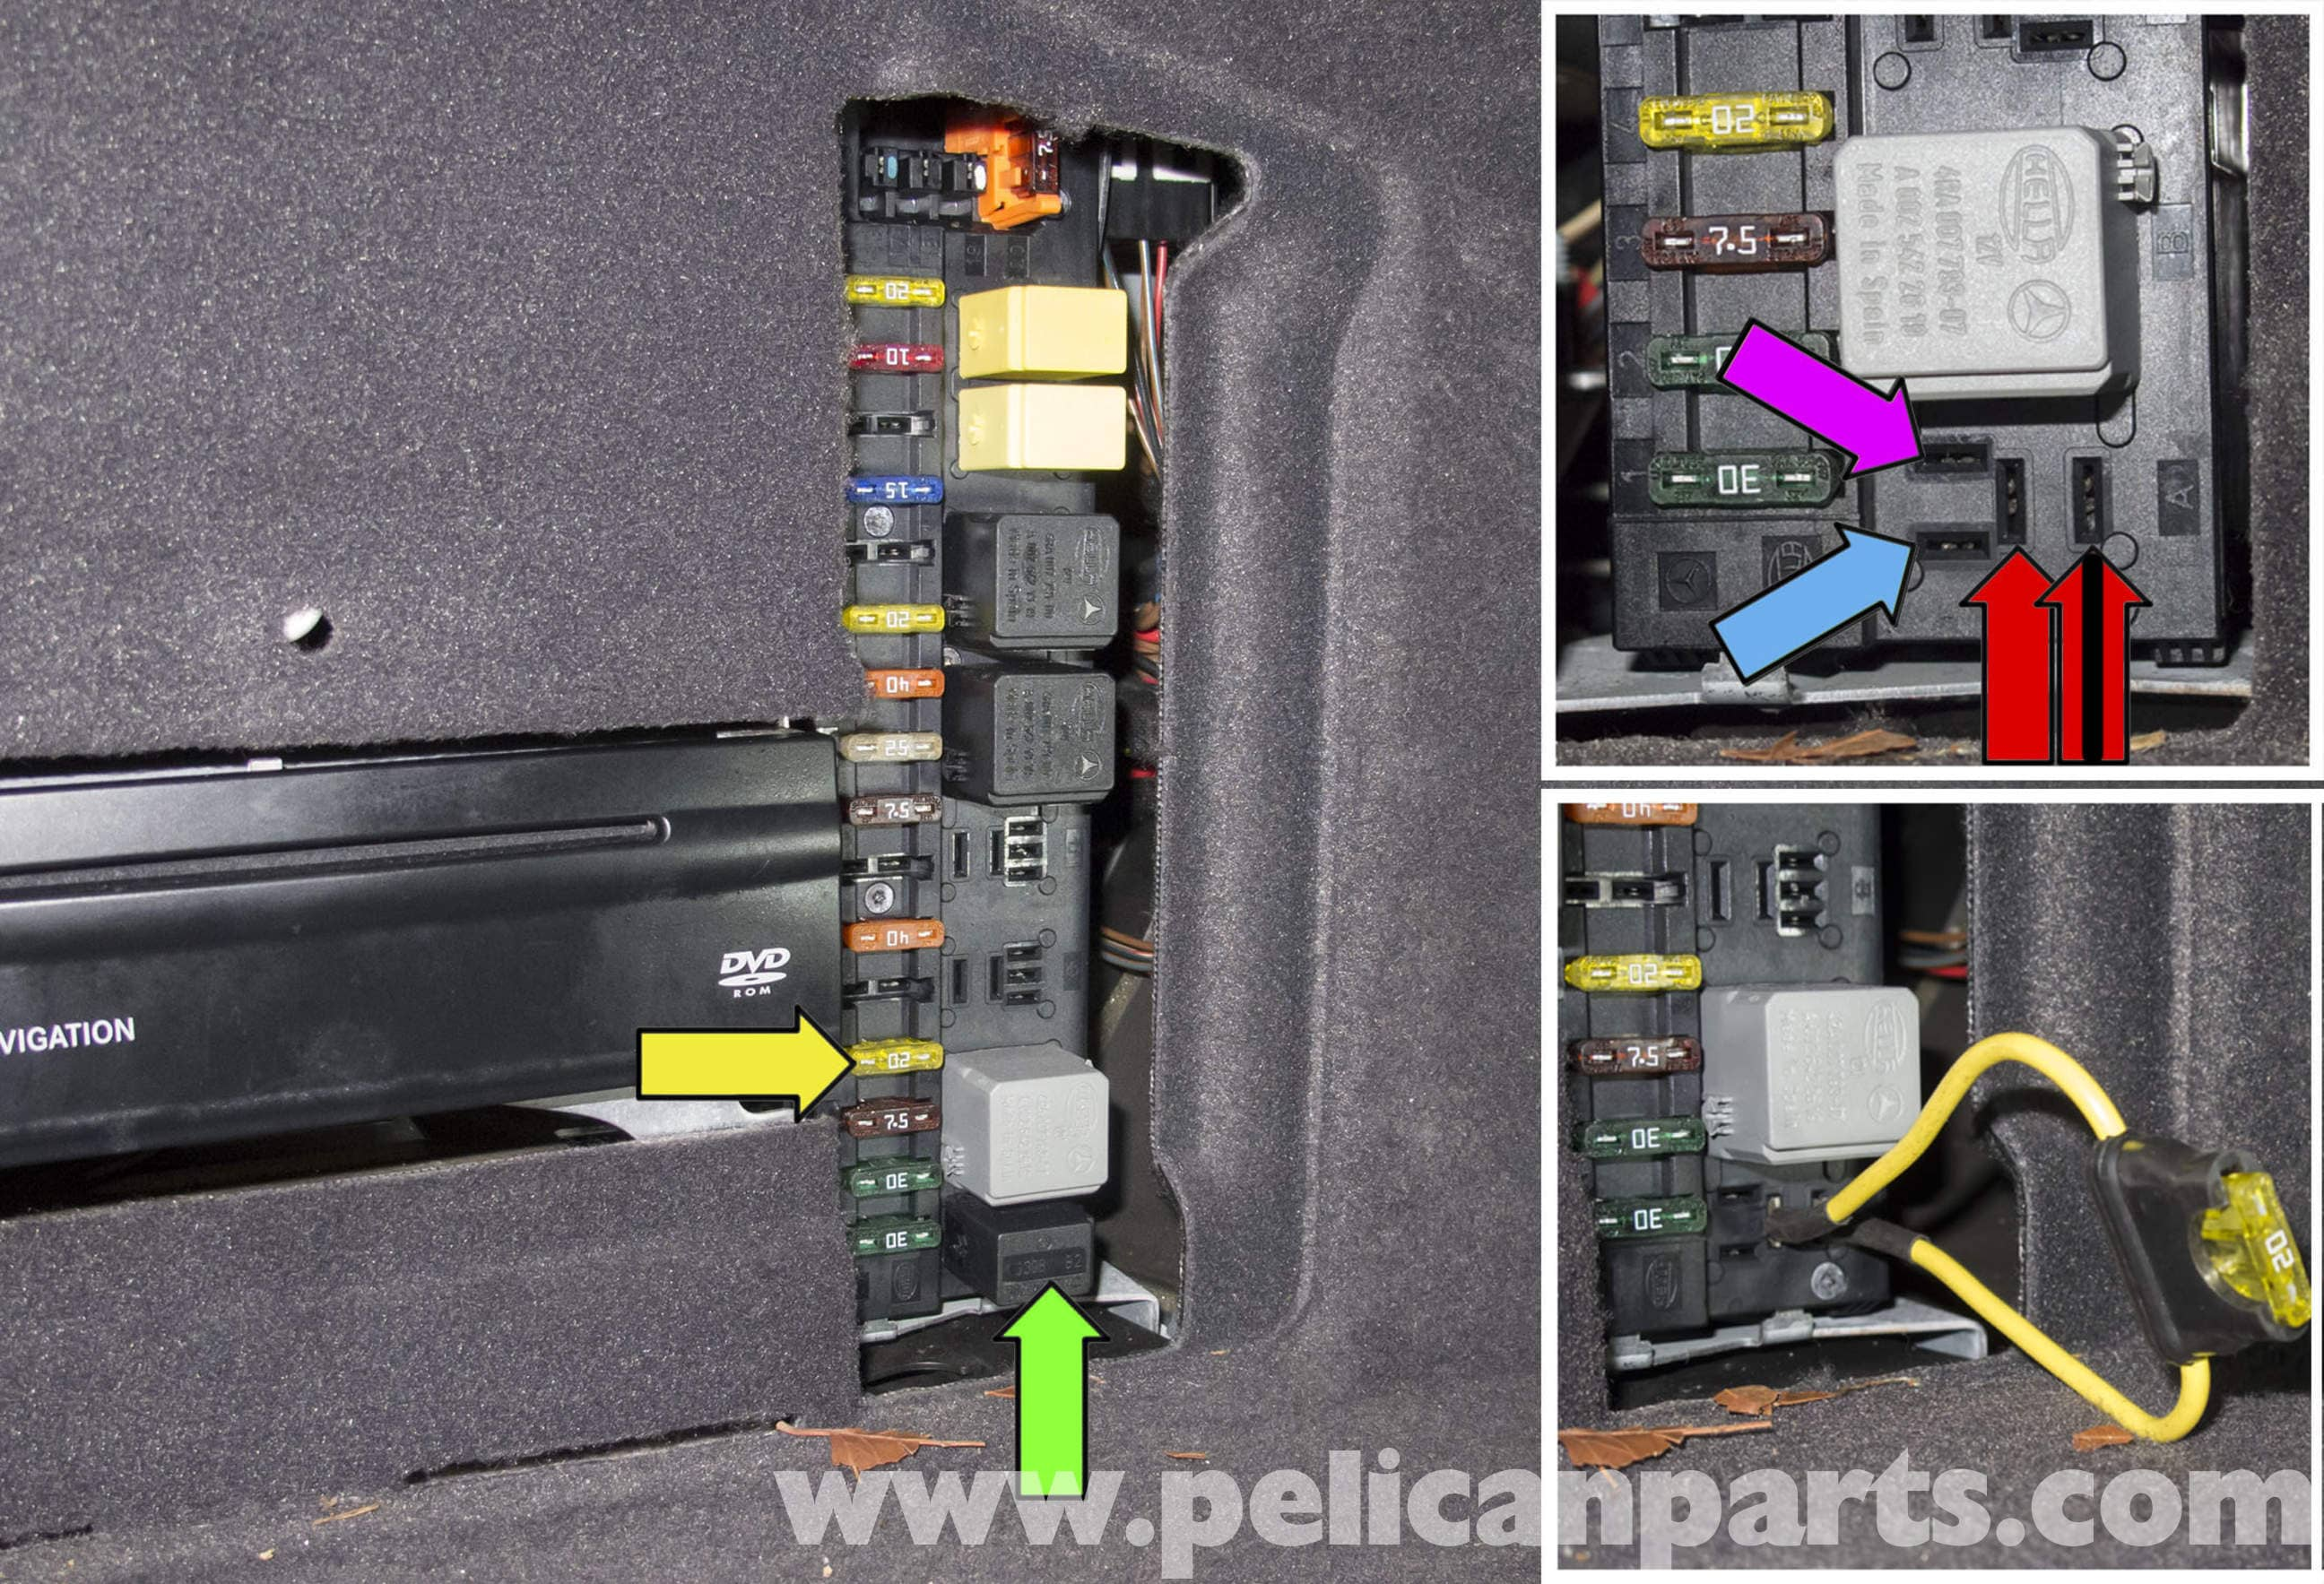 E55 fuel pump relay wiring diy wiring diagrams mercedes benz w211 fuel pump testing 2003 2009 e320 pelican rh pelicanparts com fuel pump relay circuit fuel pump relay circuit cheapraybanclubmaster Gallery